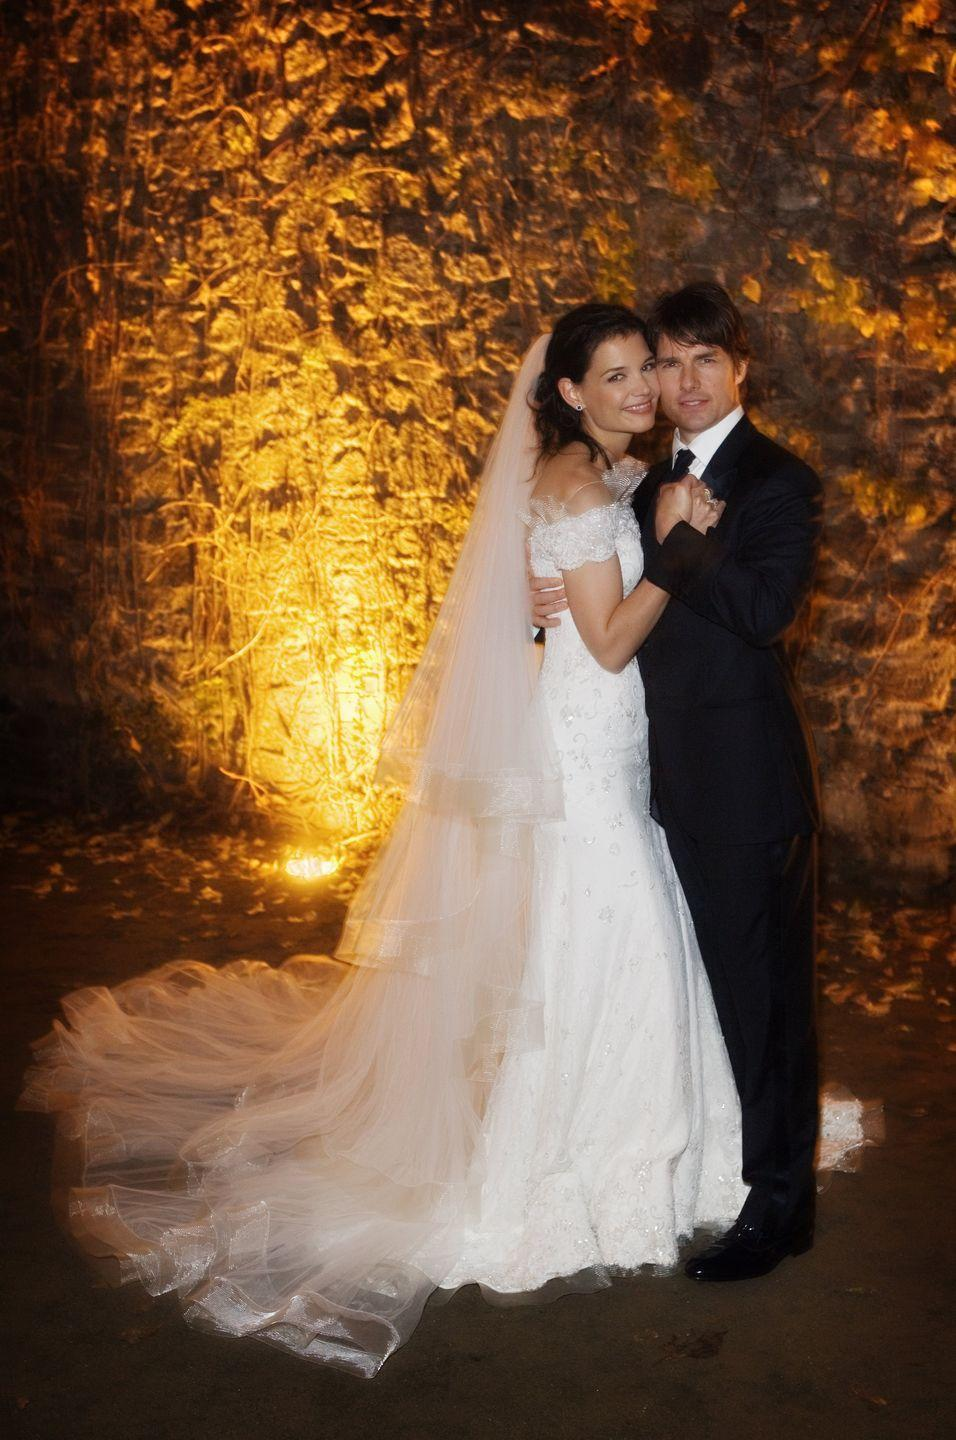 """<p>On November 18, Tom Cruise and Katie Holmes threw a $3.5 million wedding at Castello Odescalchi in Bracciano, near Rome, Italy. The lavish wedding topped off a seriously dramatic courtship: The couple had been dating only about two months before they married, and one month before the wedding, Cruise jumped for joy over his love for Holmes on Oprah's couch in one of his most famous interviews. Katie divorced Tom in 2012, allegedly due to his involvement in Scientology, and took primary custody of their daughter, <a href=""""https://www.goodhousekeeping.com/life/news/a43380/suri-cruise-looks-like-katie-holmes-mini-me-new-photo/"""" rel=""""nofollow noopener"""" target=""""_blank"""" data-ylk=""""slk:Suri"""" class=""""link rapid-noclick-resp"""">Suri</a>.</p>"""